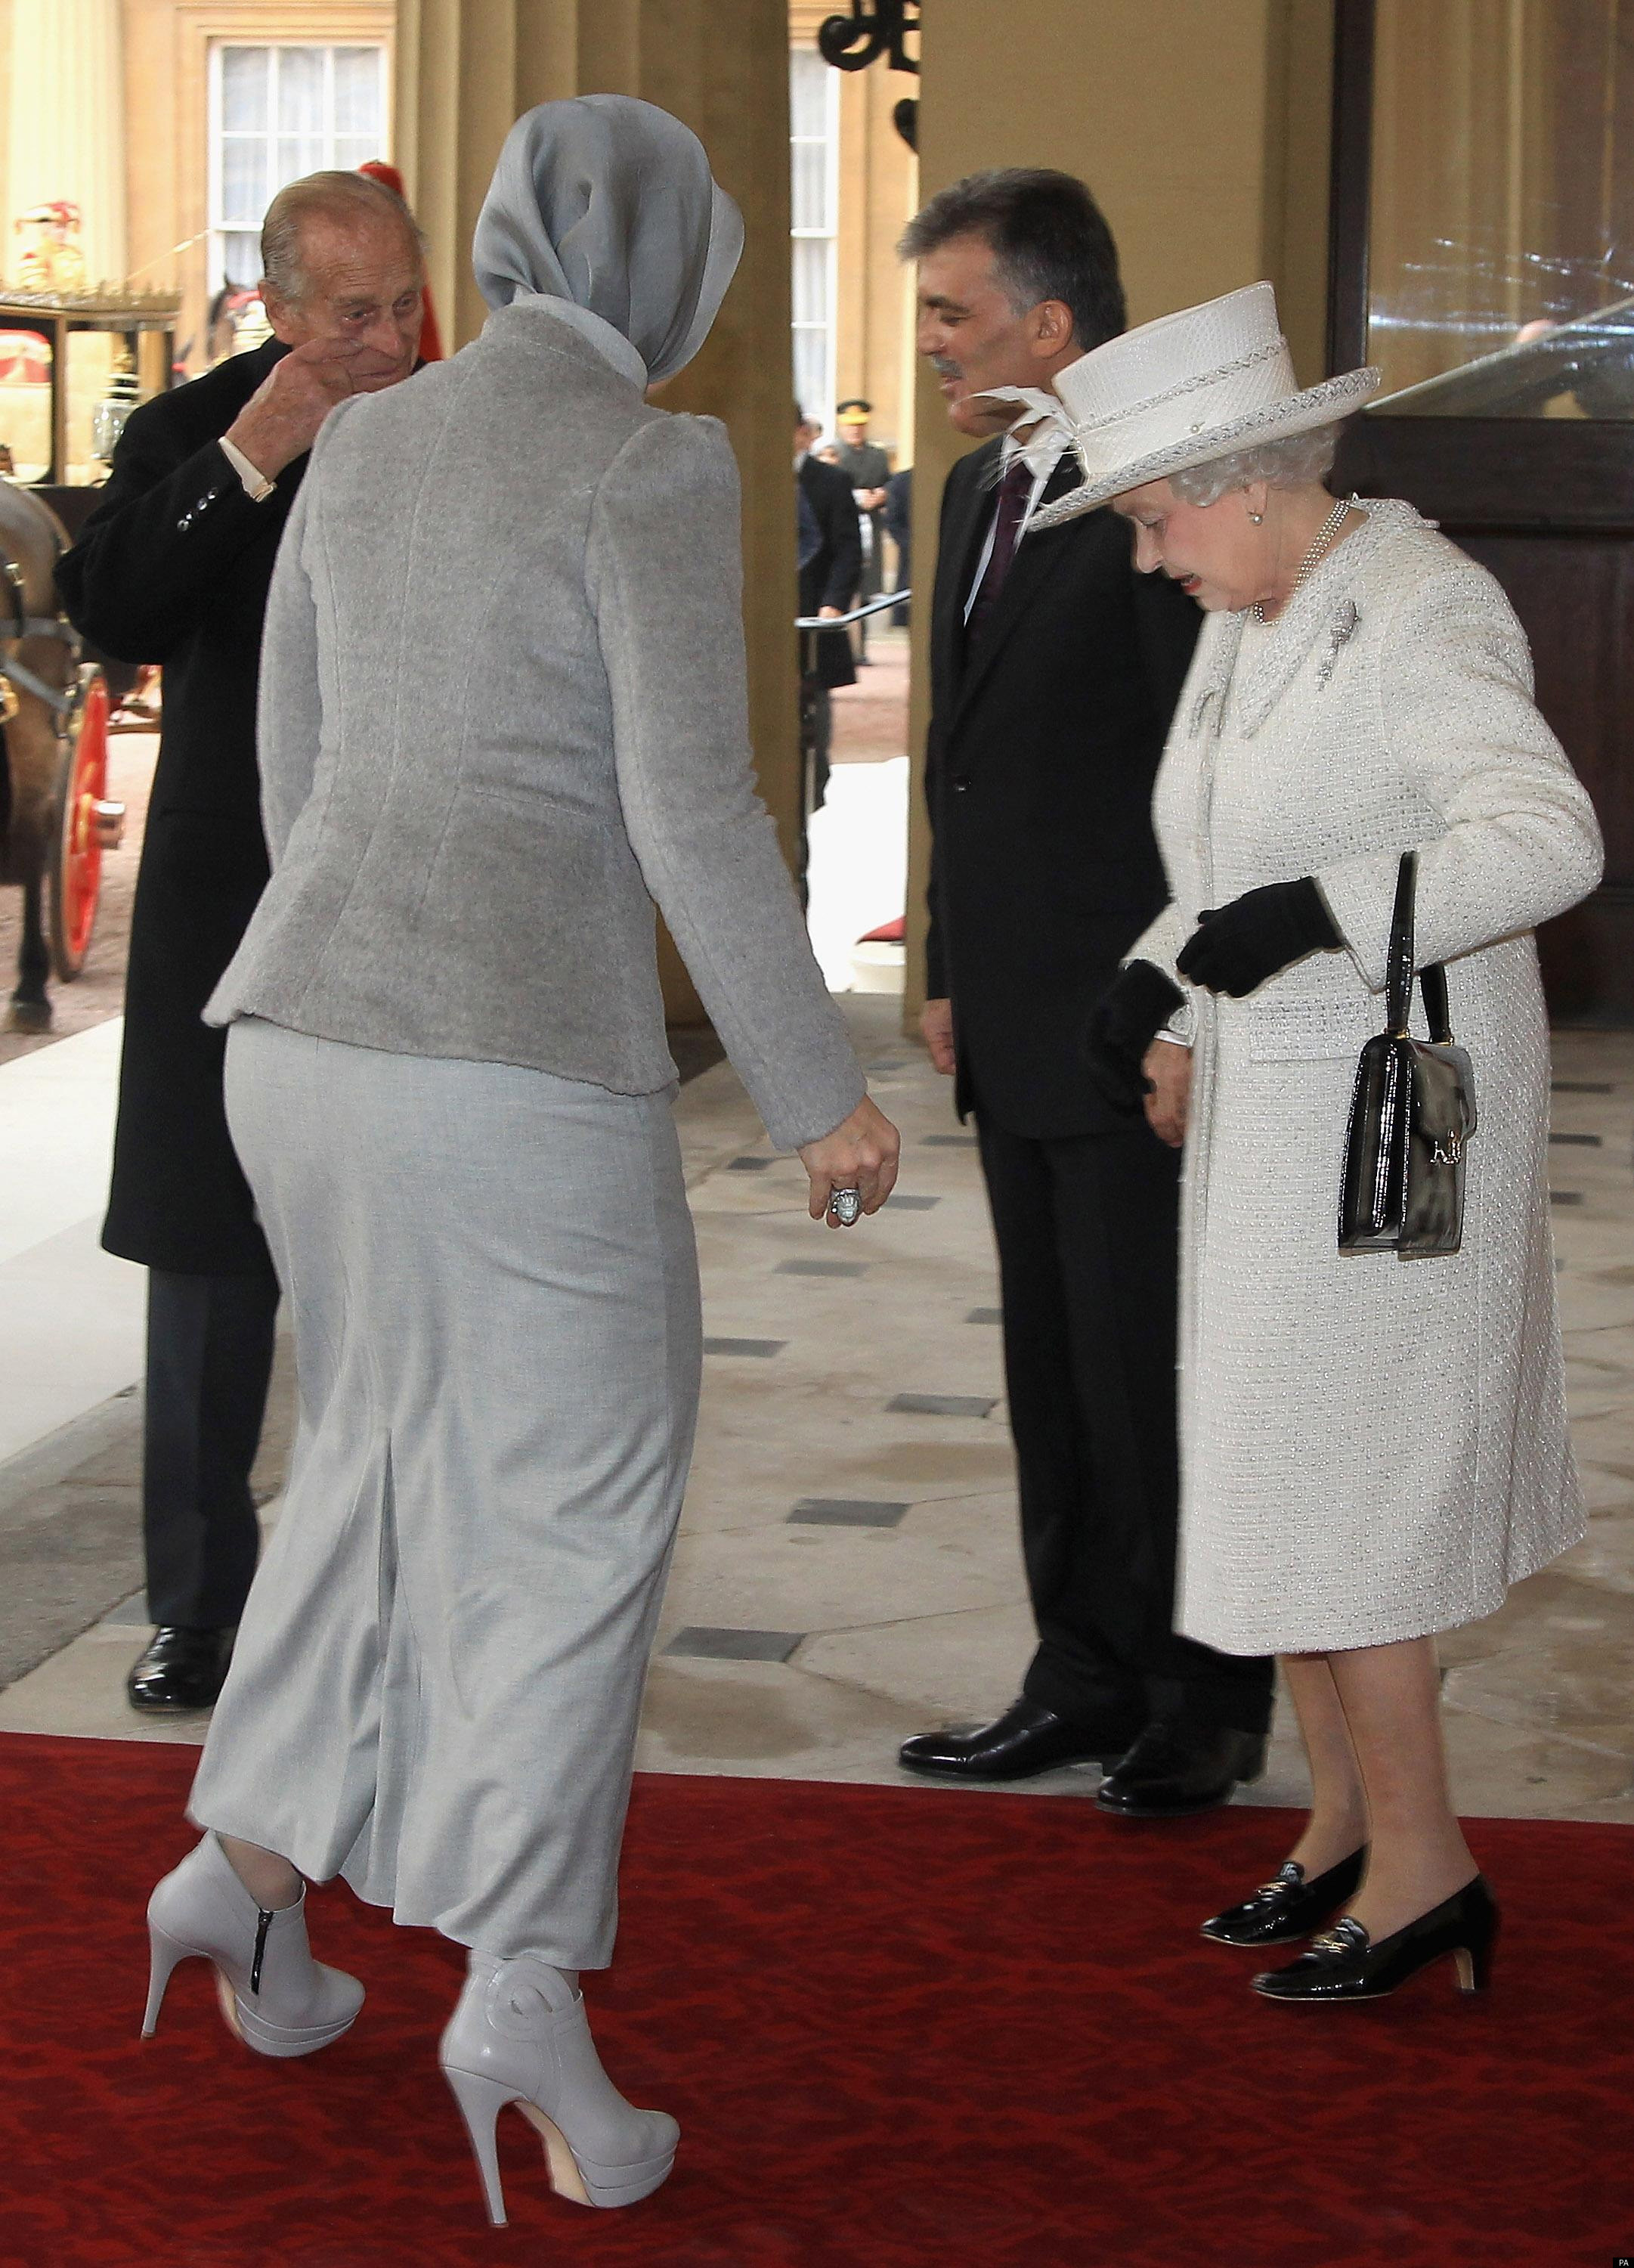 Queen Welcomes Turkish President Gul (But All Eyes Are On ...